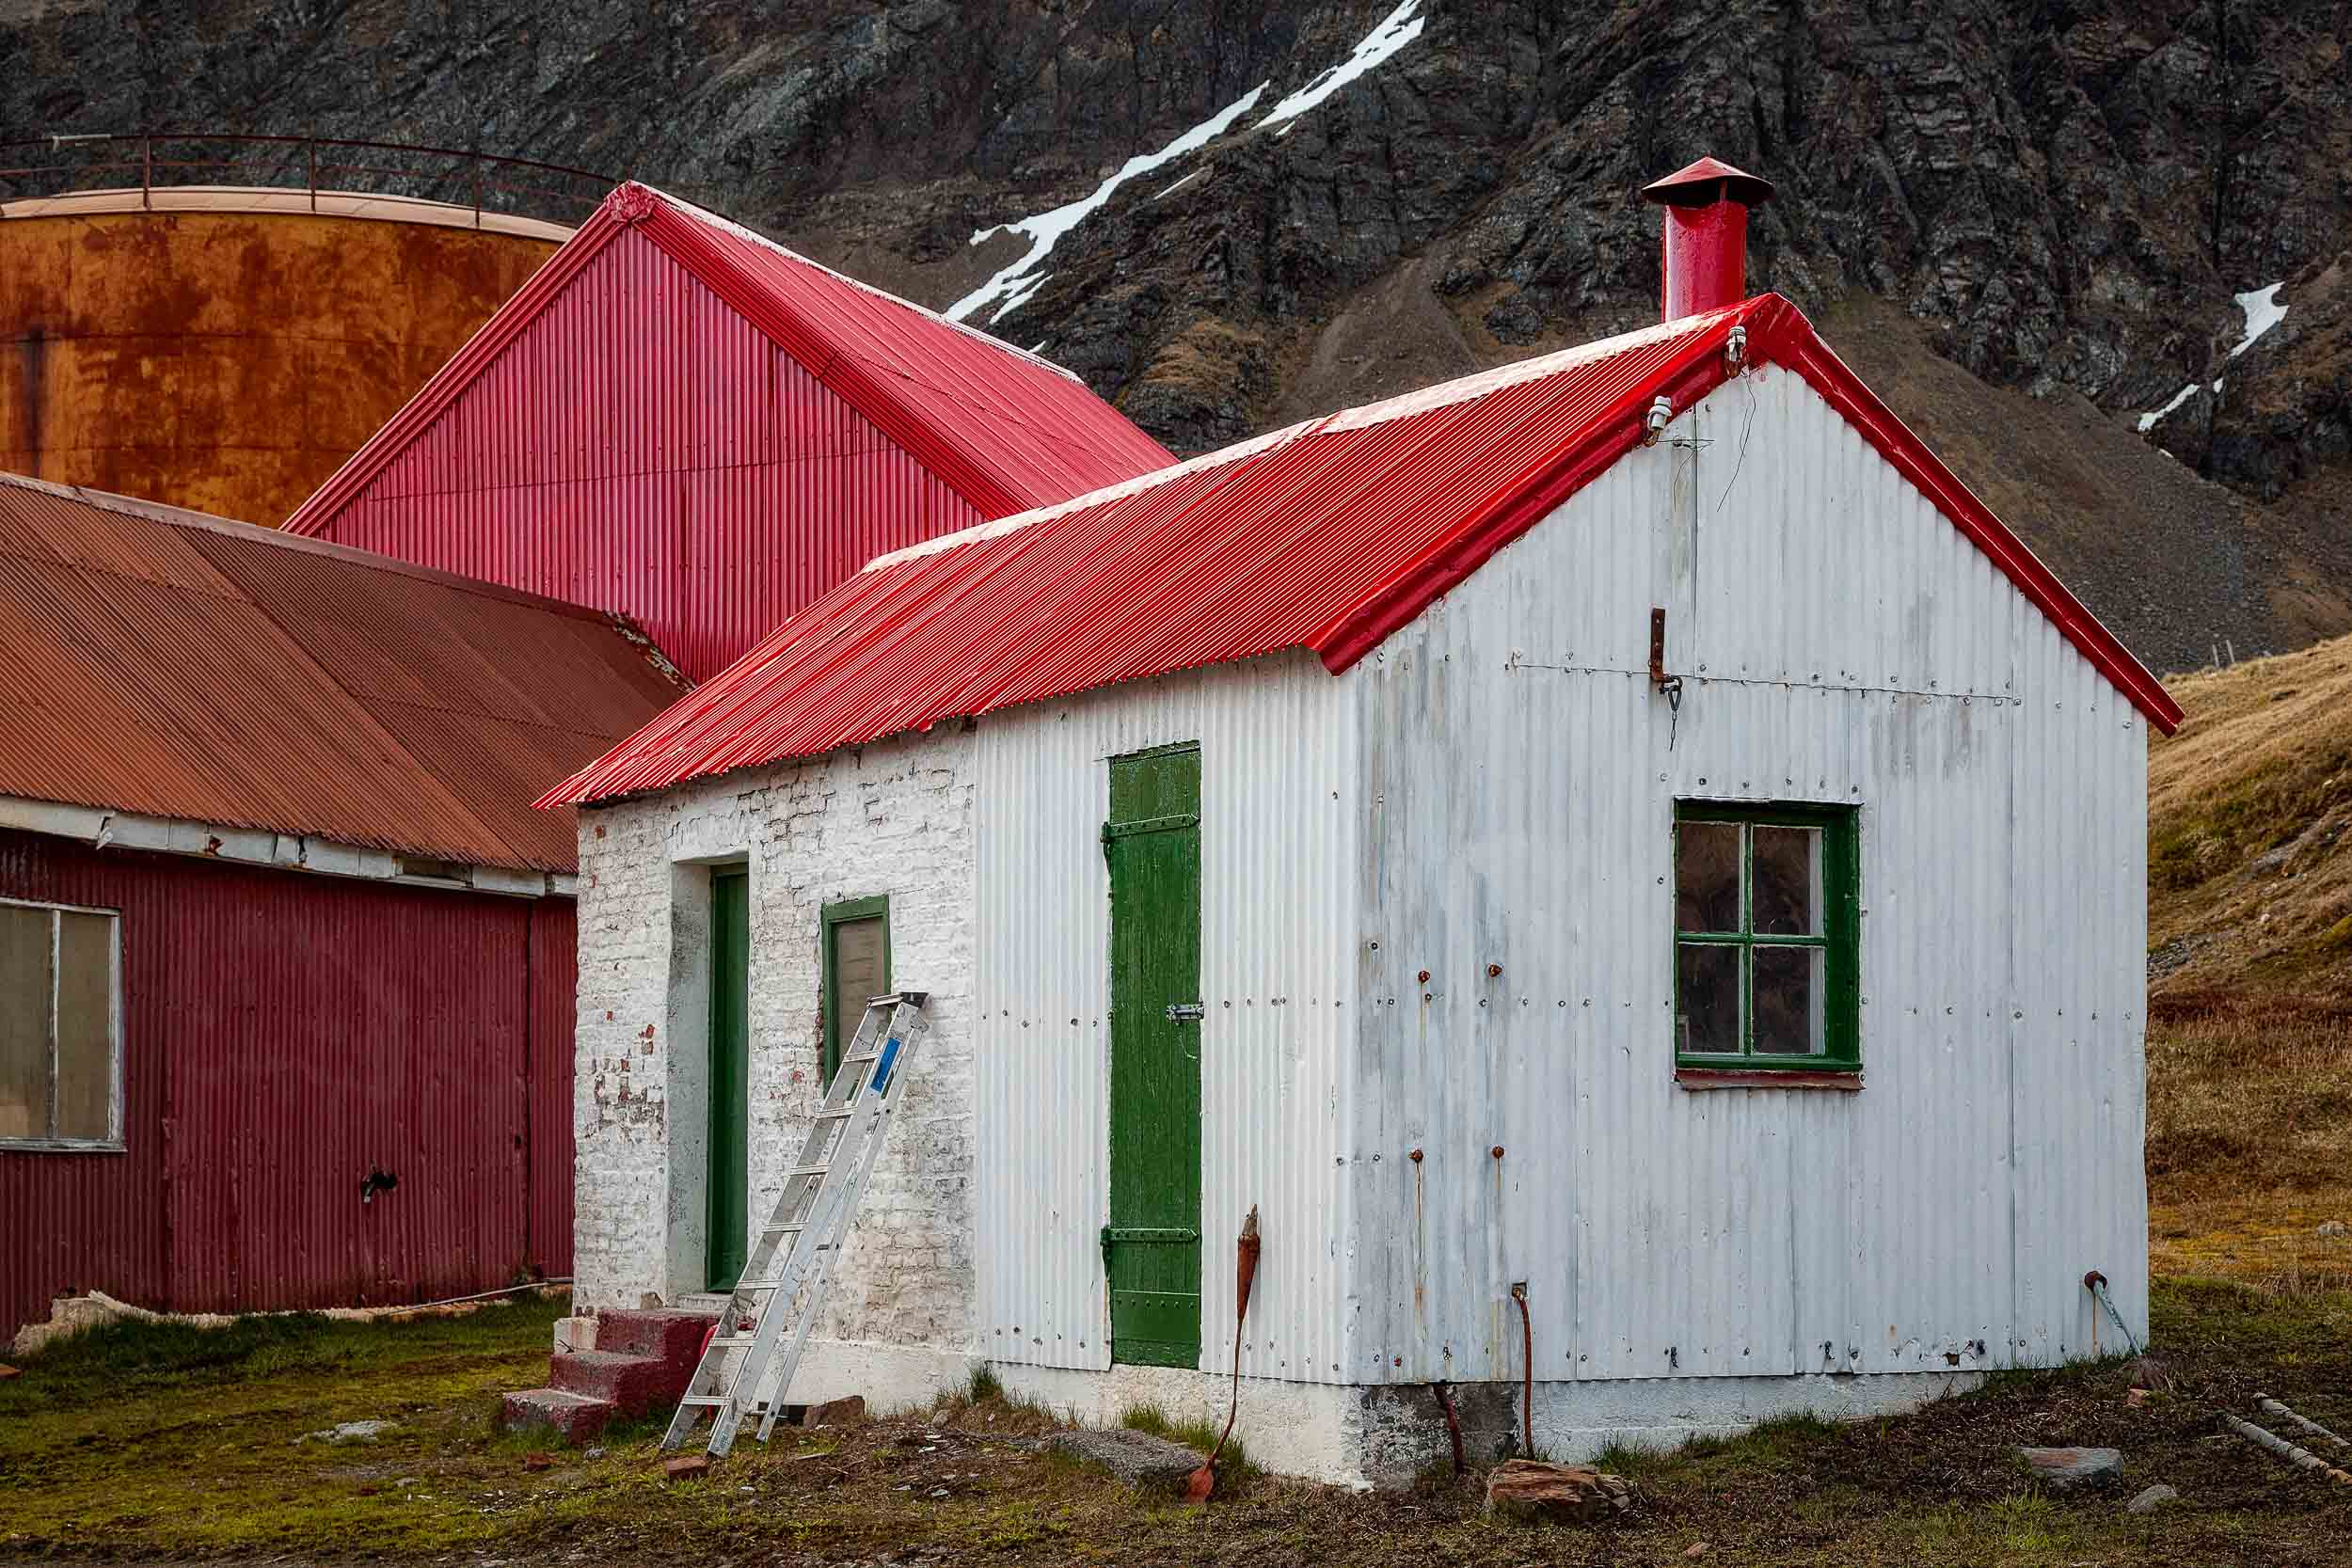 Renovations    underway at the former    Whaling Station    in    Grytviken    on    South Georgia Island   .